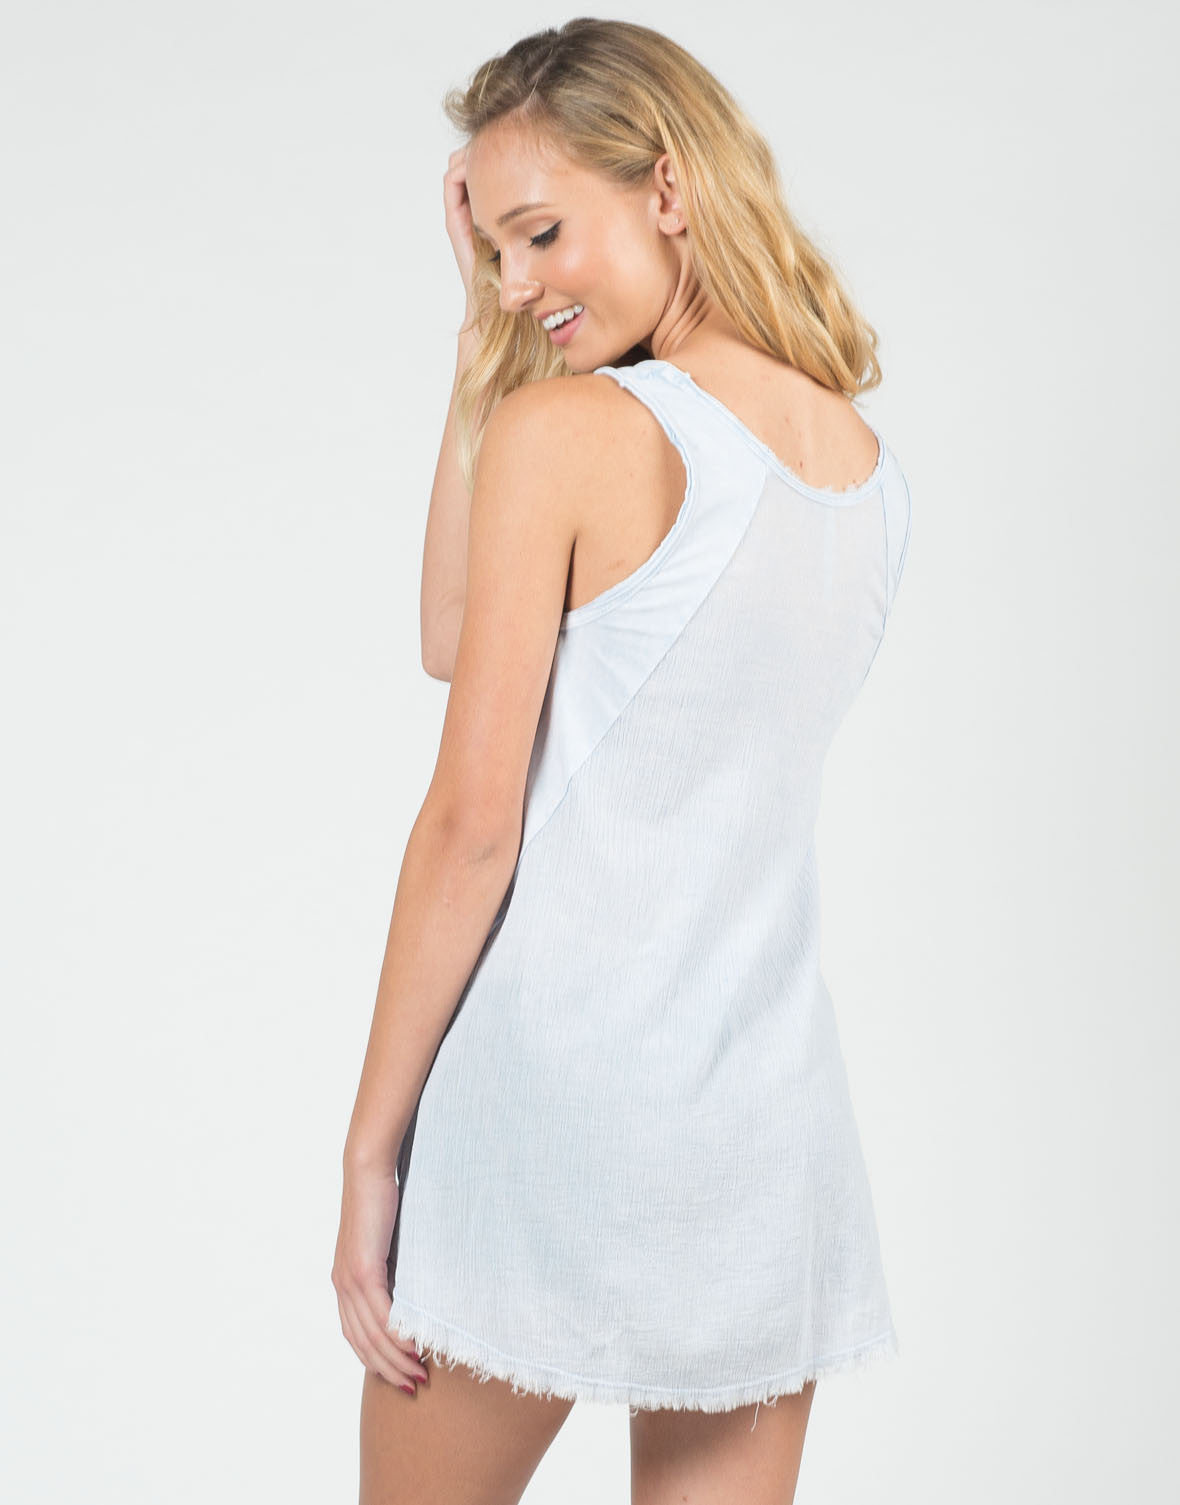 Back View of Distressed Lightweight Flowy Tank